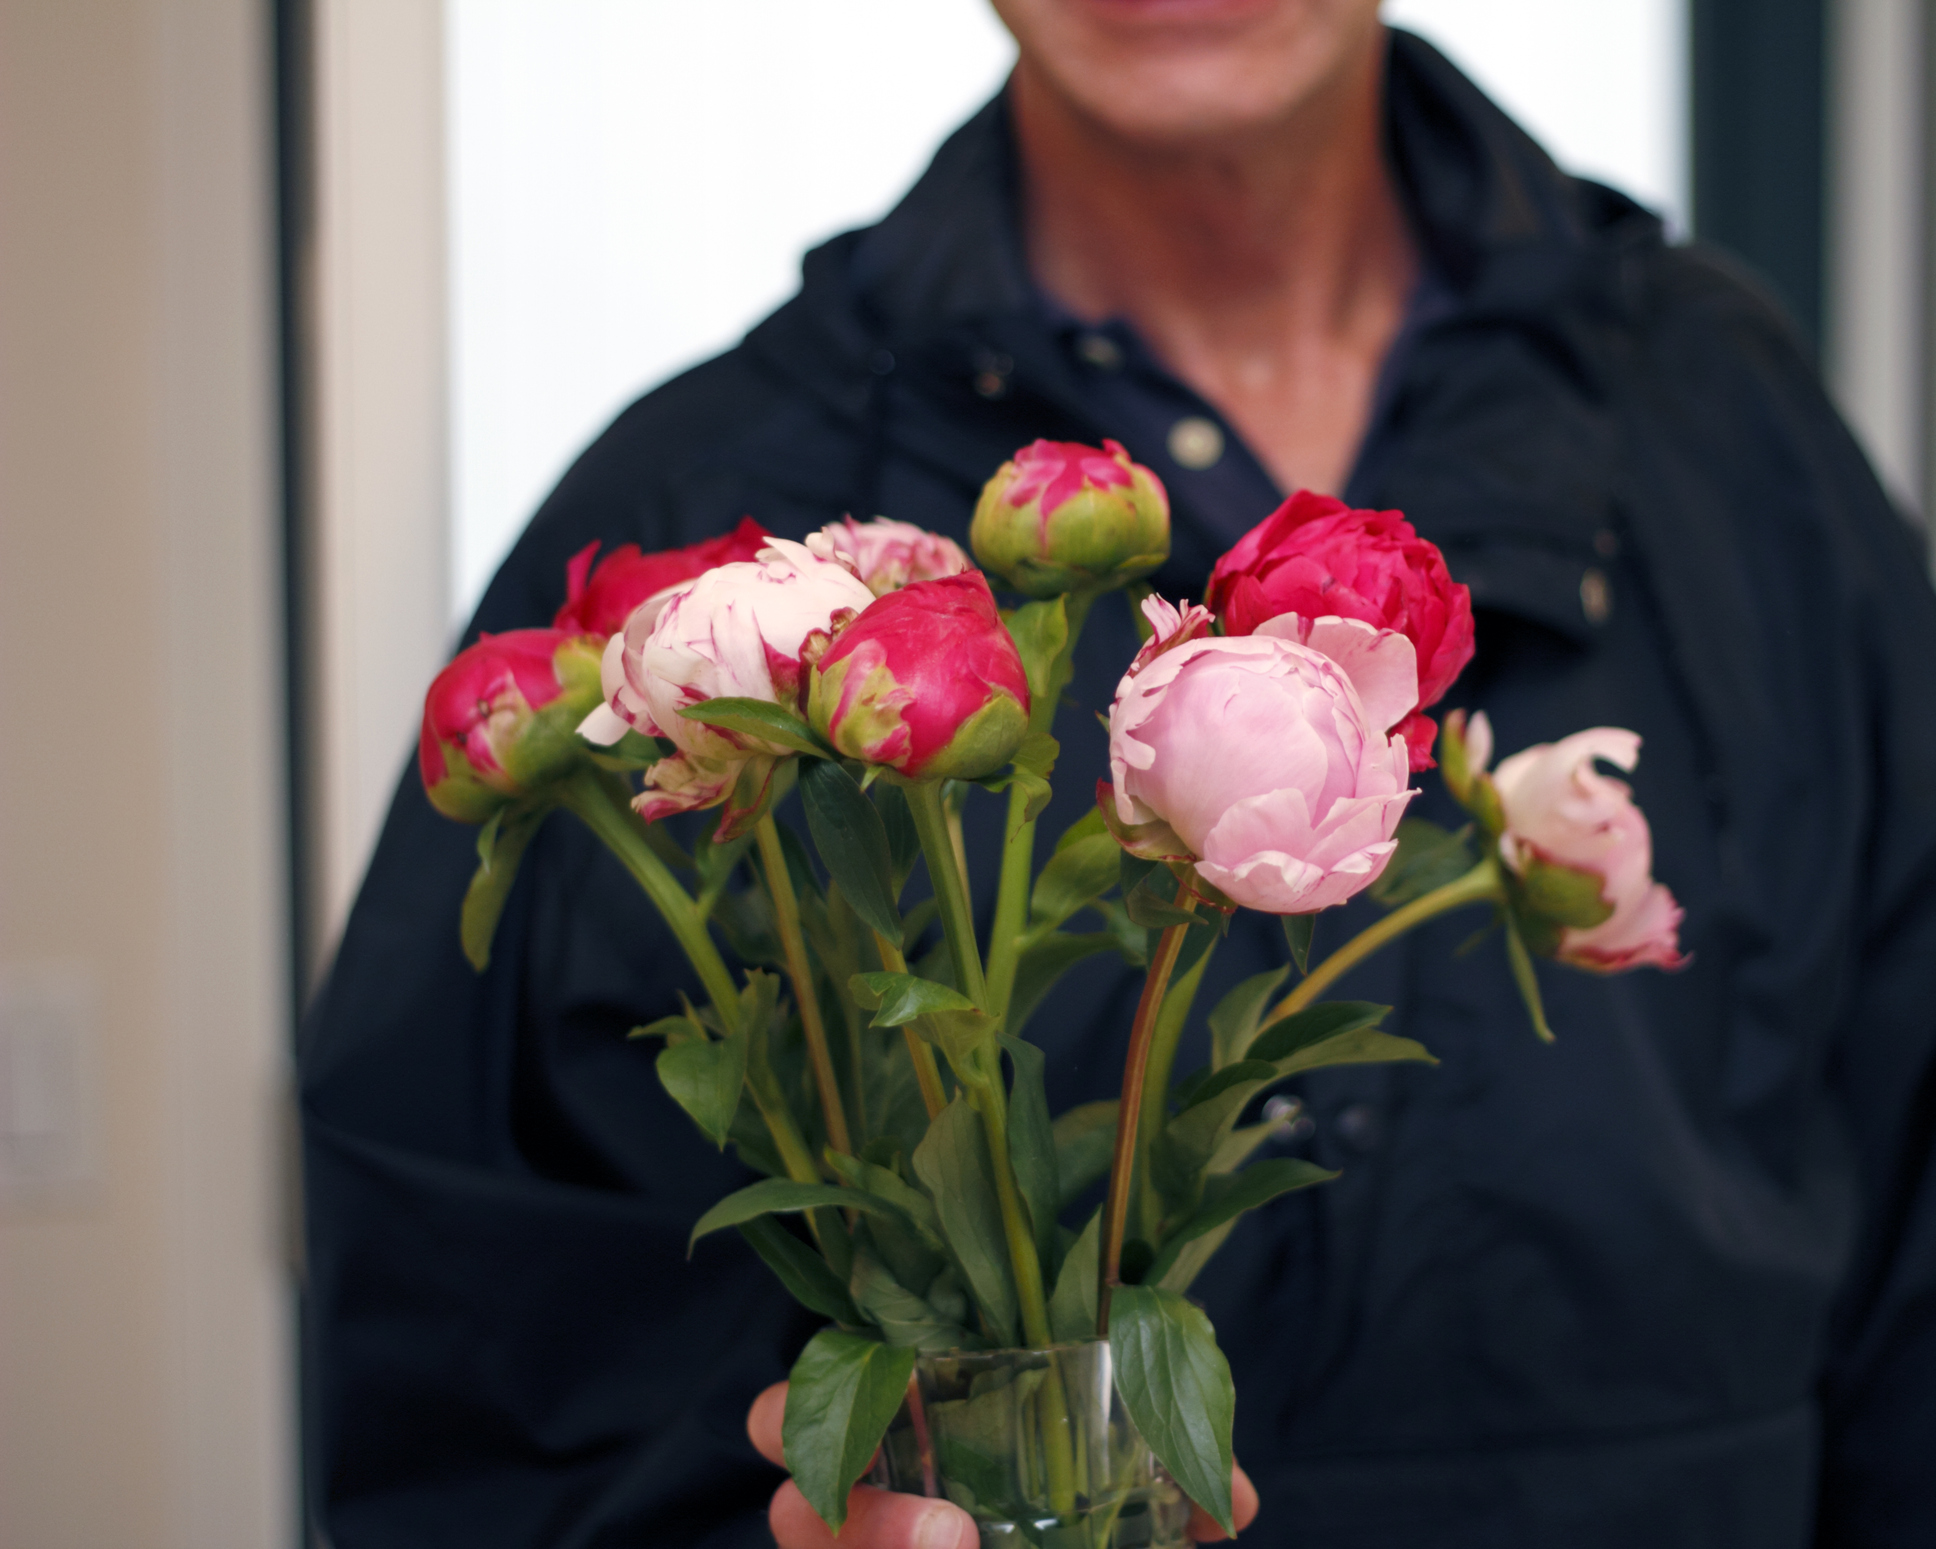 Man Giving Vase of Peonies